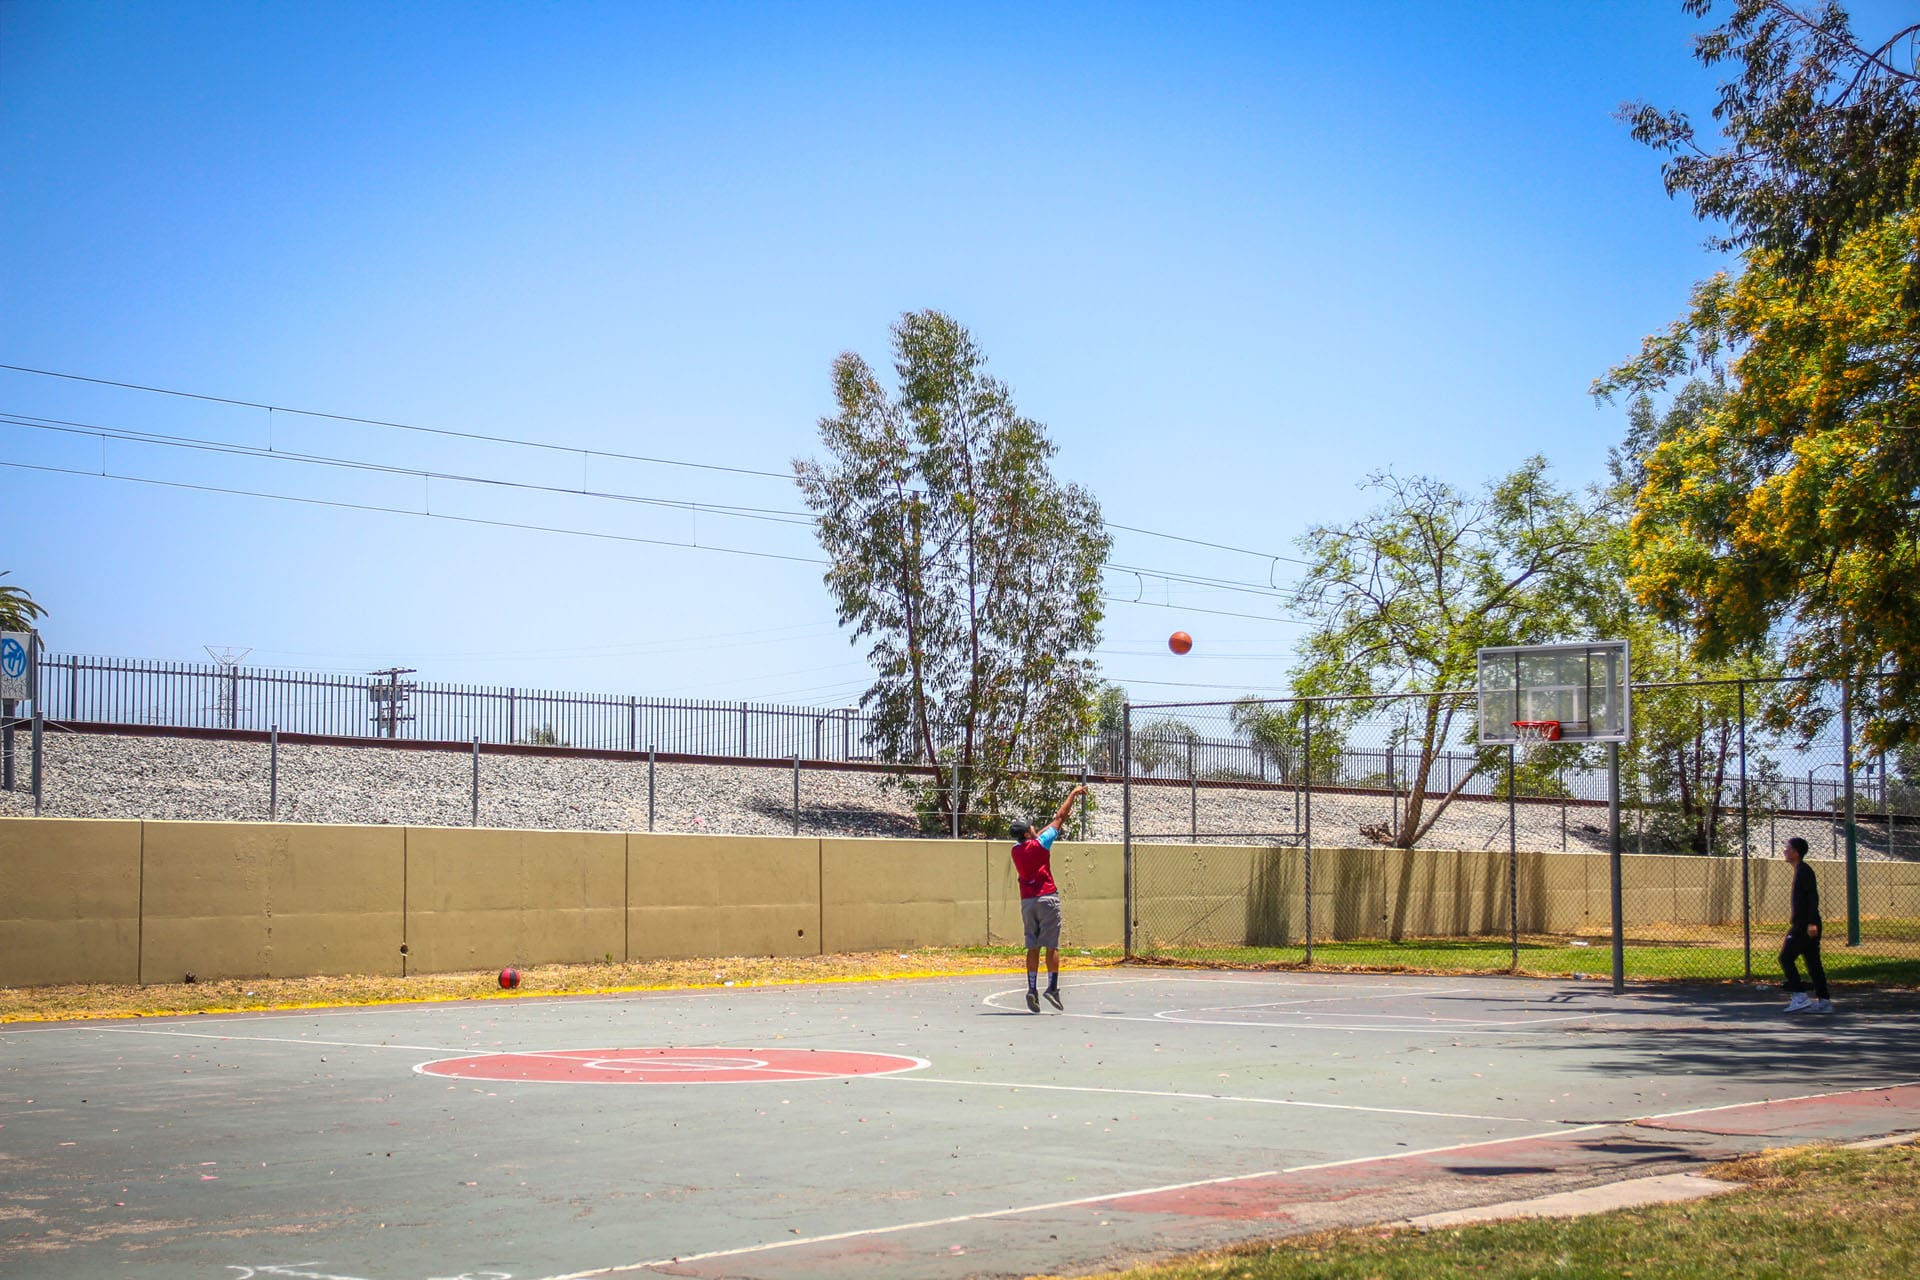 Young man shooting a hoop on a basketball court